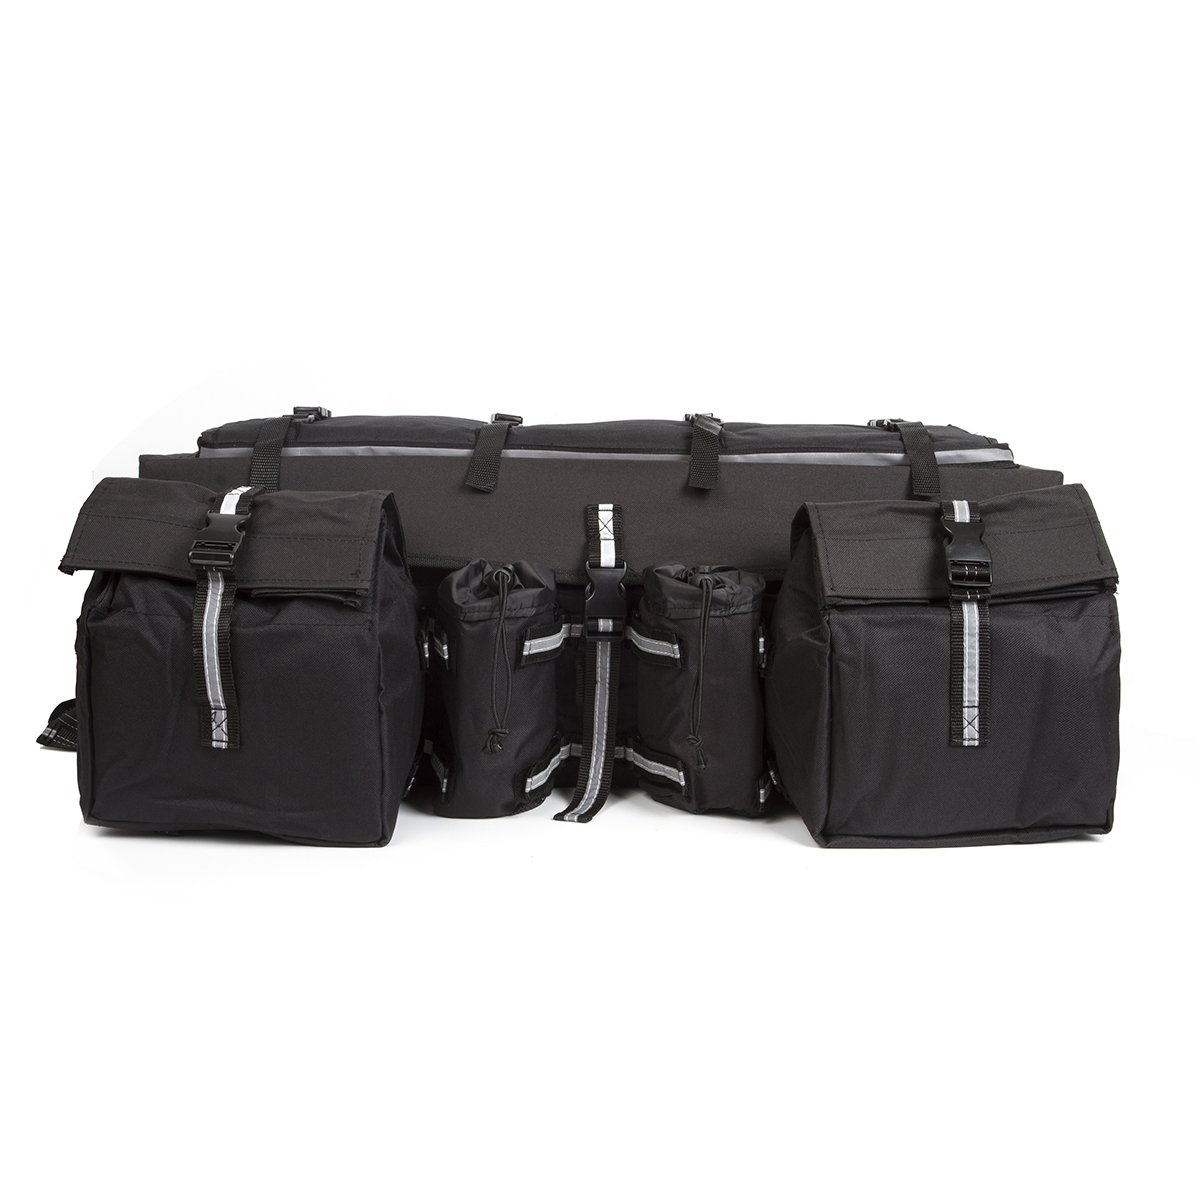 ATV Cargo Bag Rear Rack Gear Bag Made of 600D Waterproof Fabric with Topside Bungee Tie-Down Storage Padded-Bottom Multi-compartment Black Acmotor COMINU012980